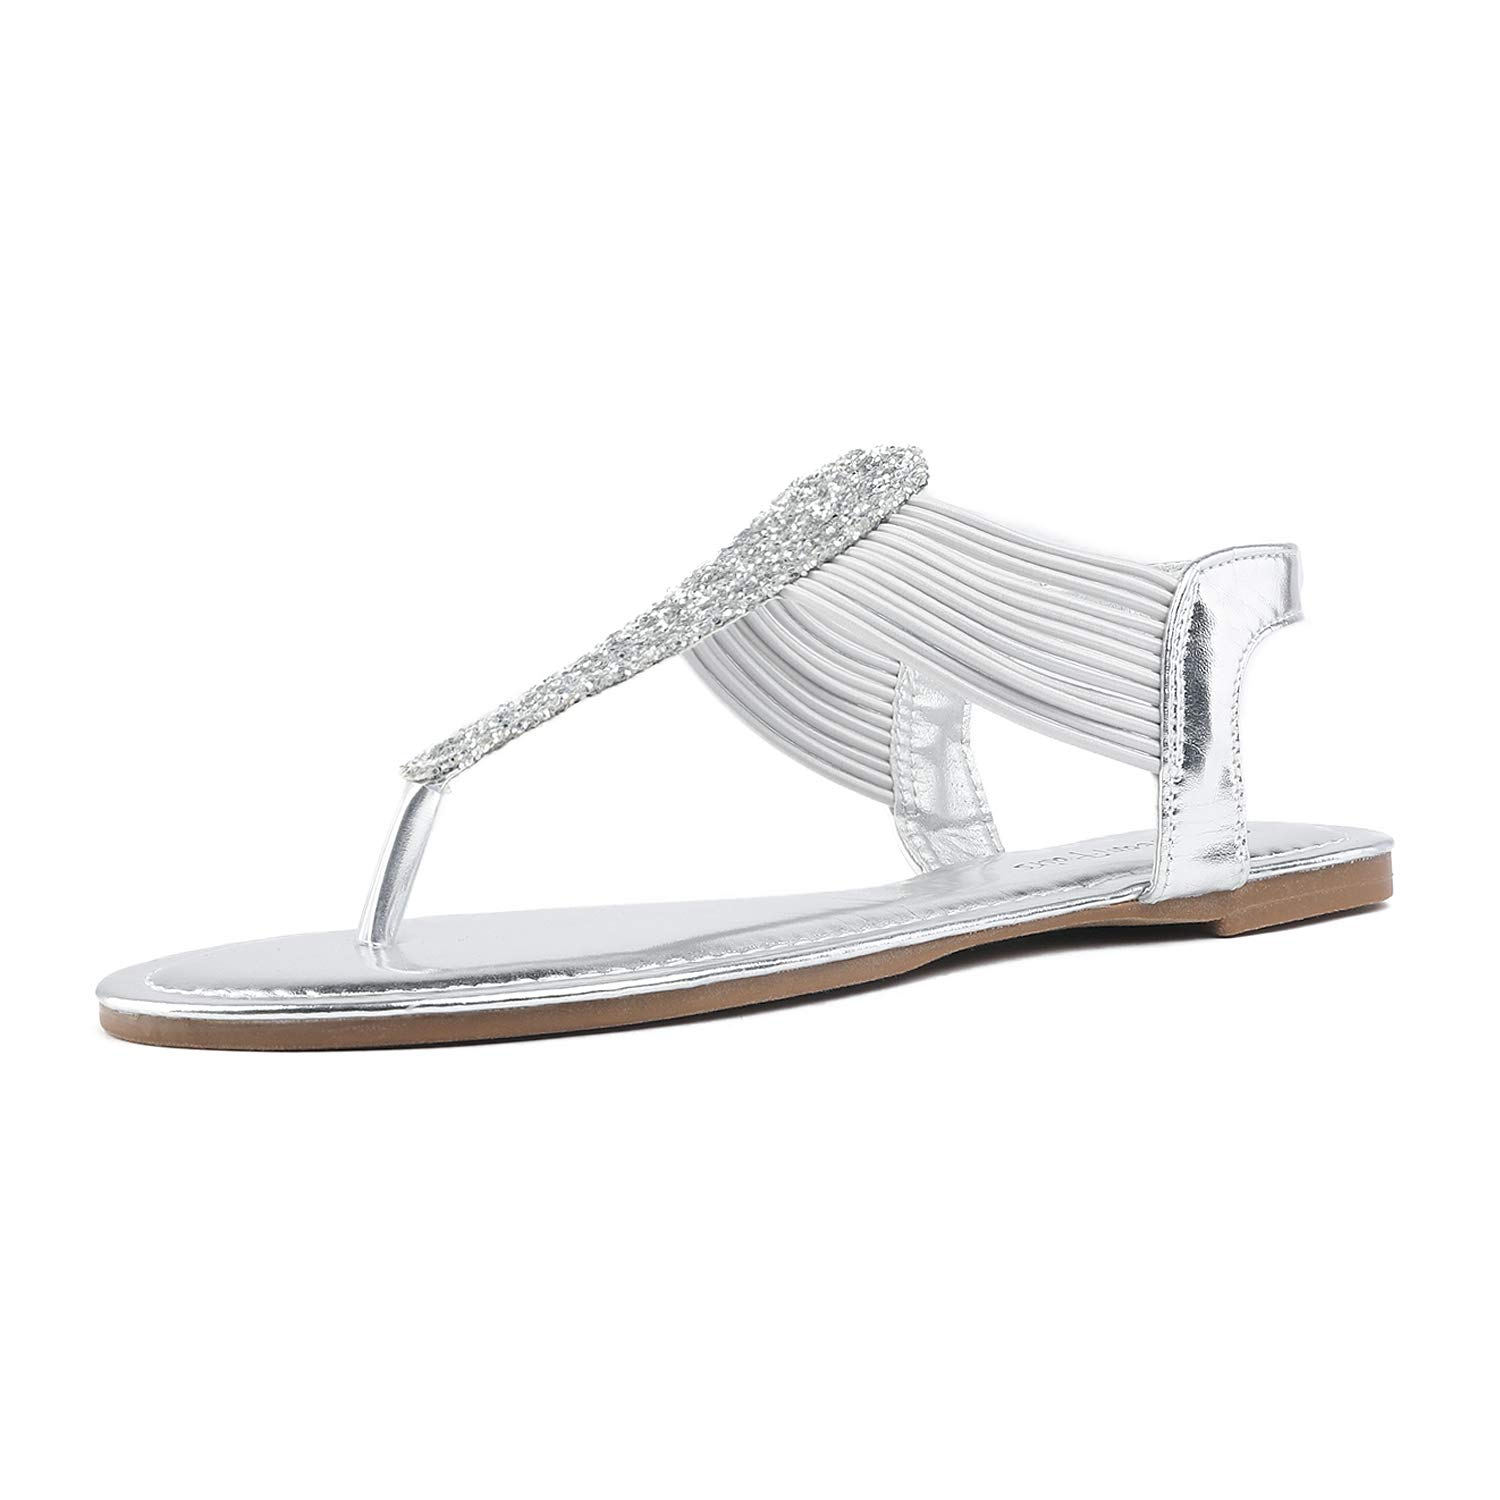 DREAM PAIRS SPPARKLY Women's Elastic Strappy String Thong Ankle Strap Summer Gladiator Sandals Silver Size 10